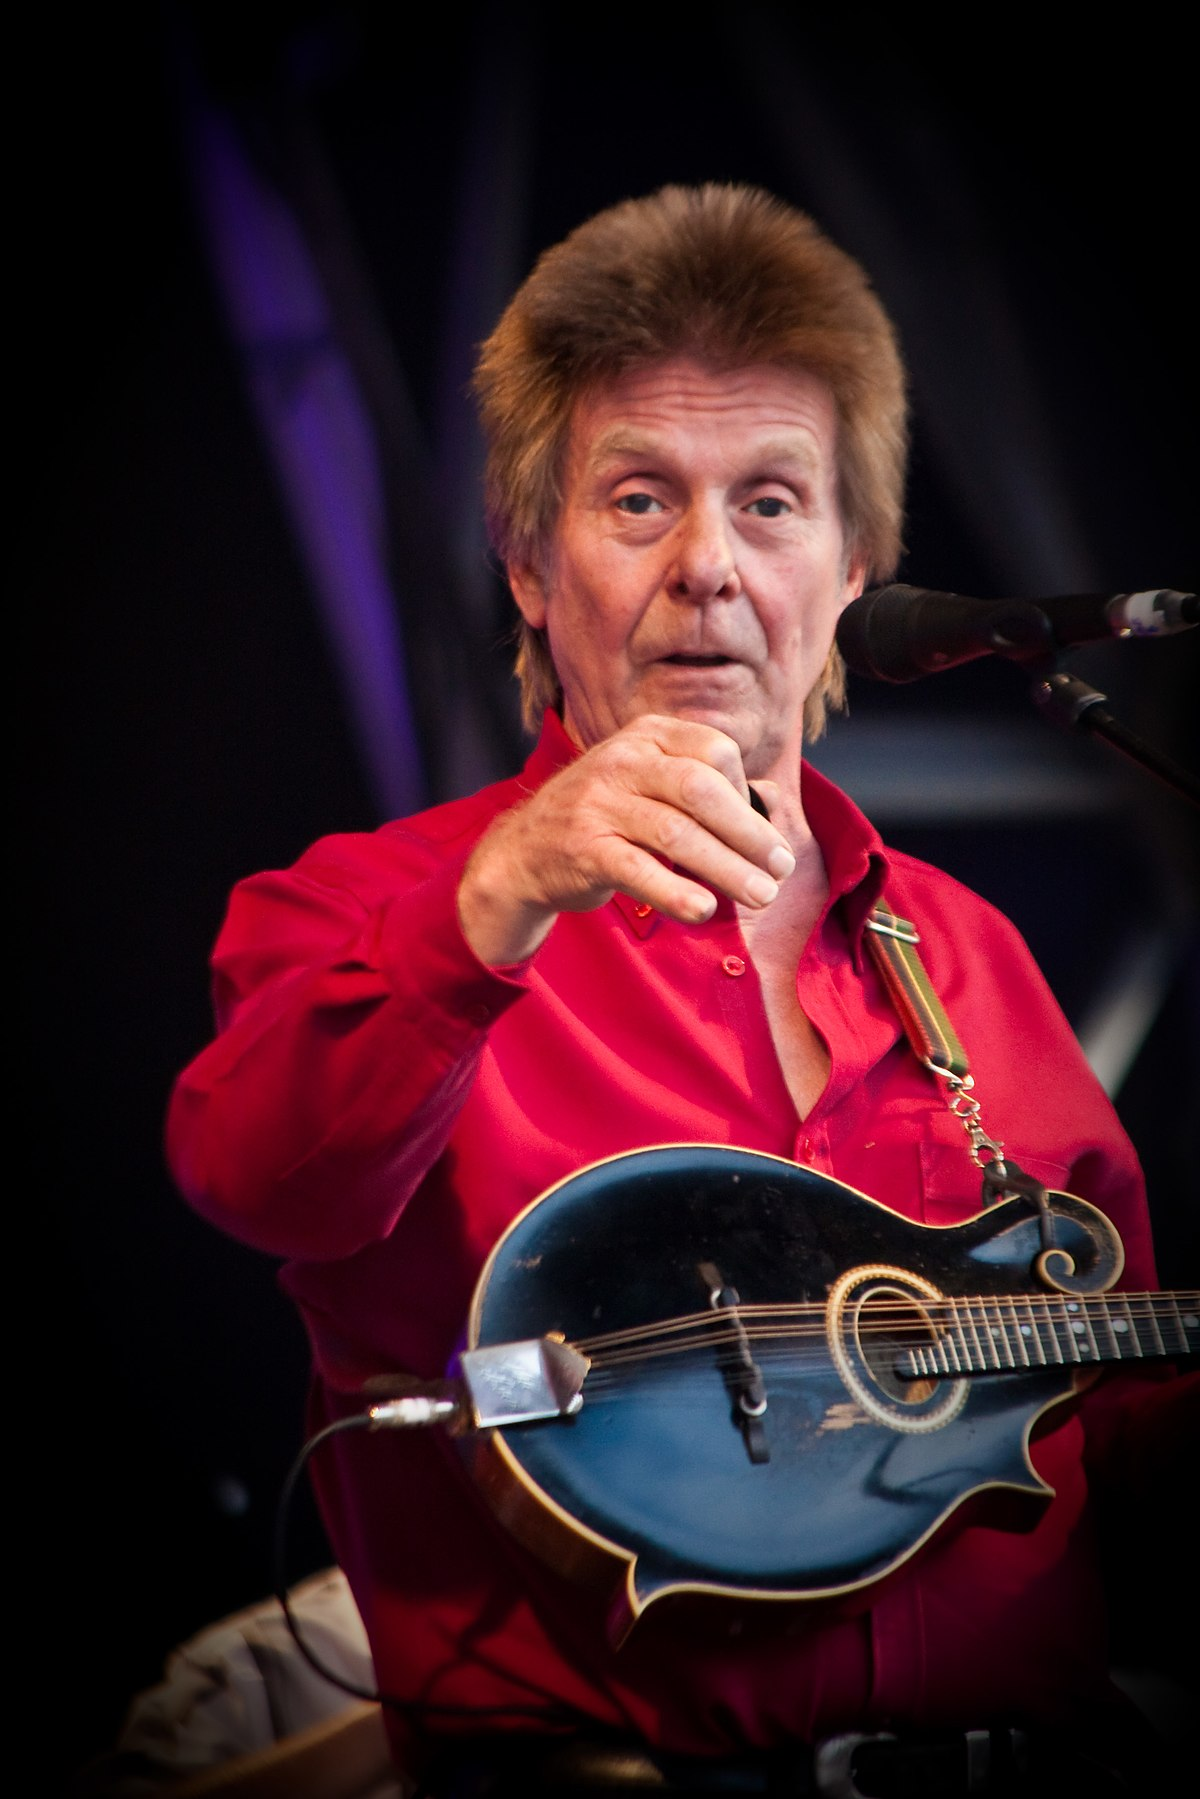 Joe Brown (singer) - Wikipedia